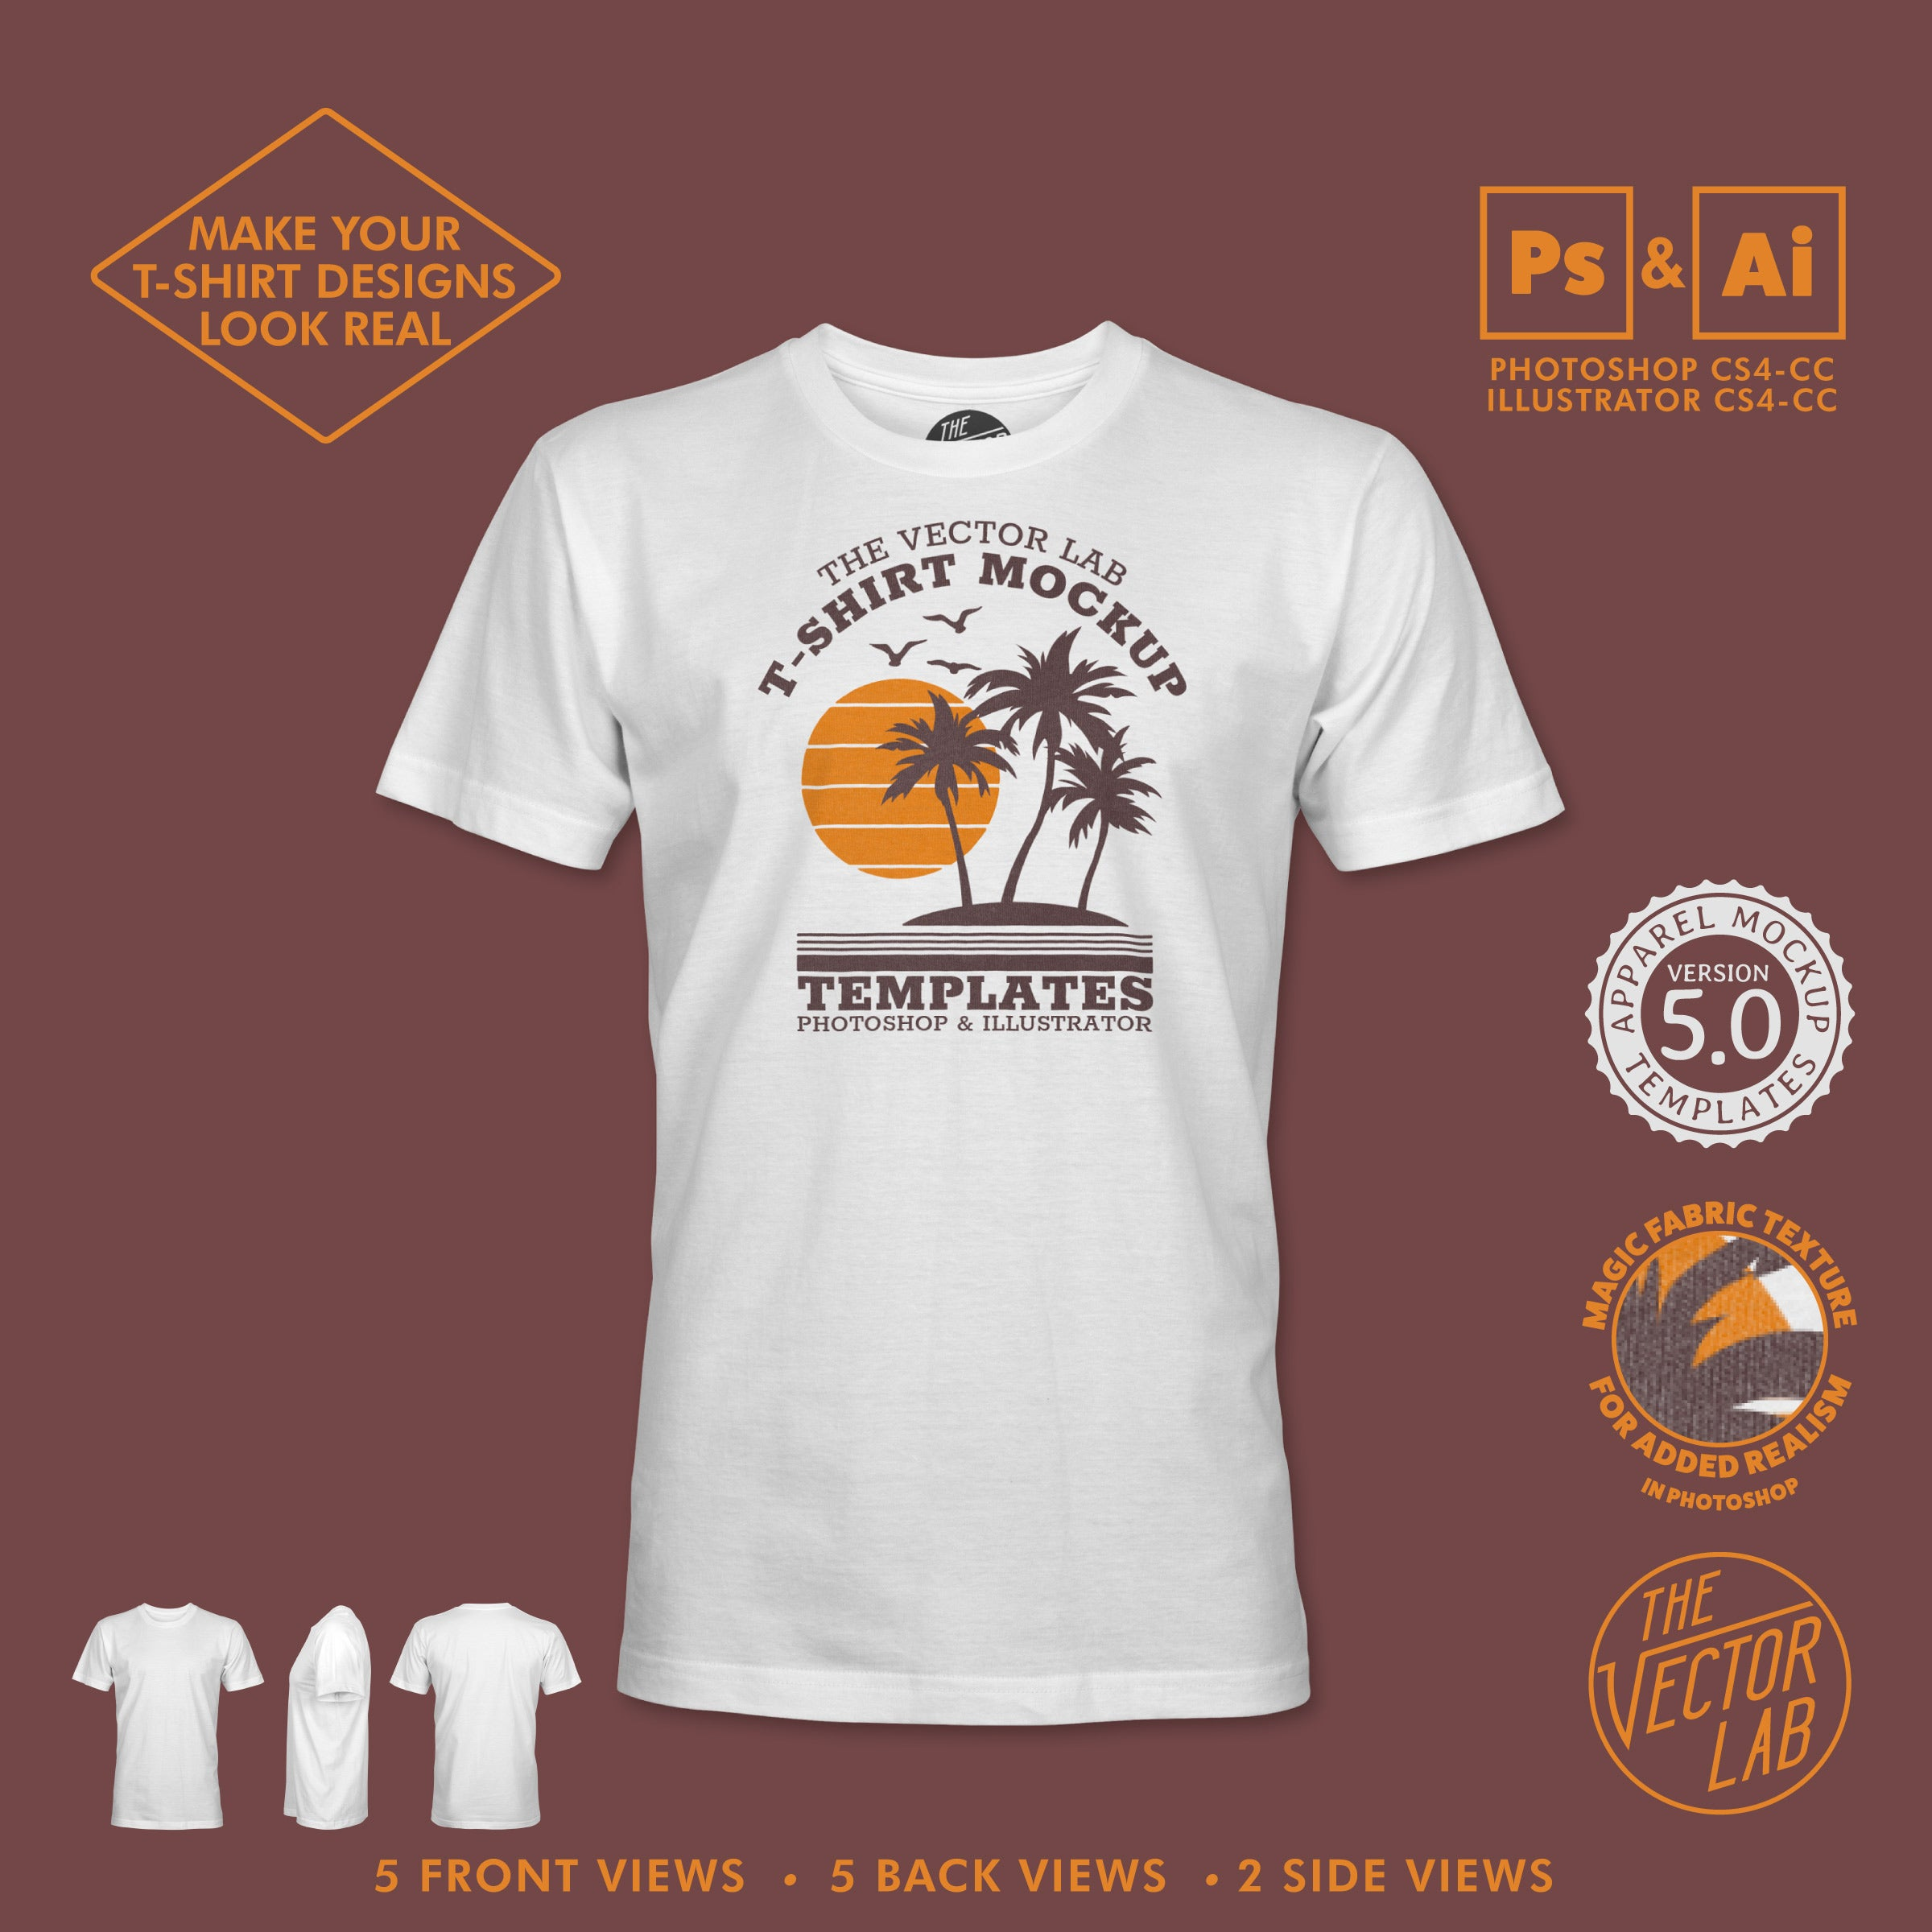 e742dcf8 ... Design Master Collection; Men's T-Shirt Mockup Templates for Photoshop  and Illustrator ...